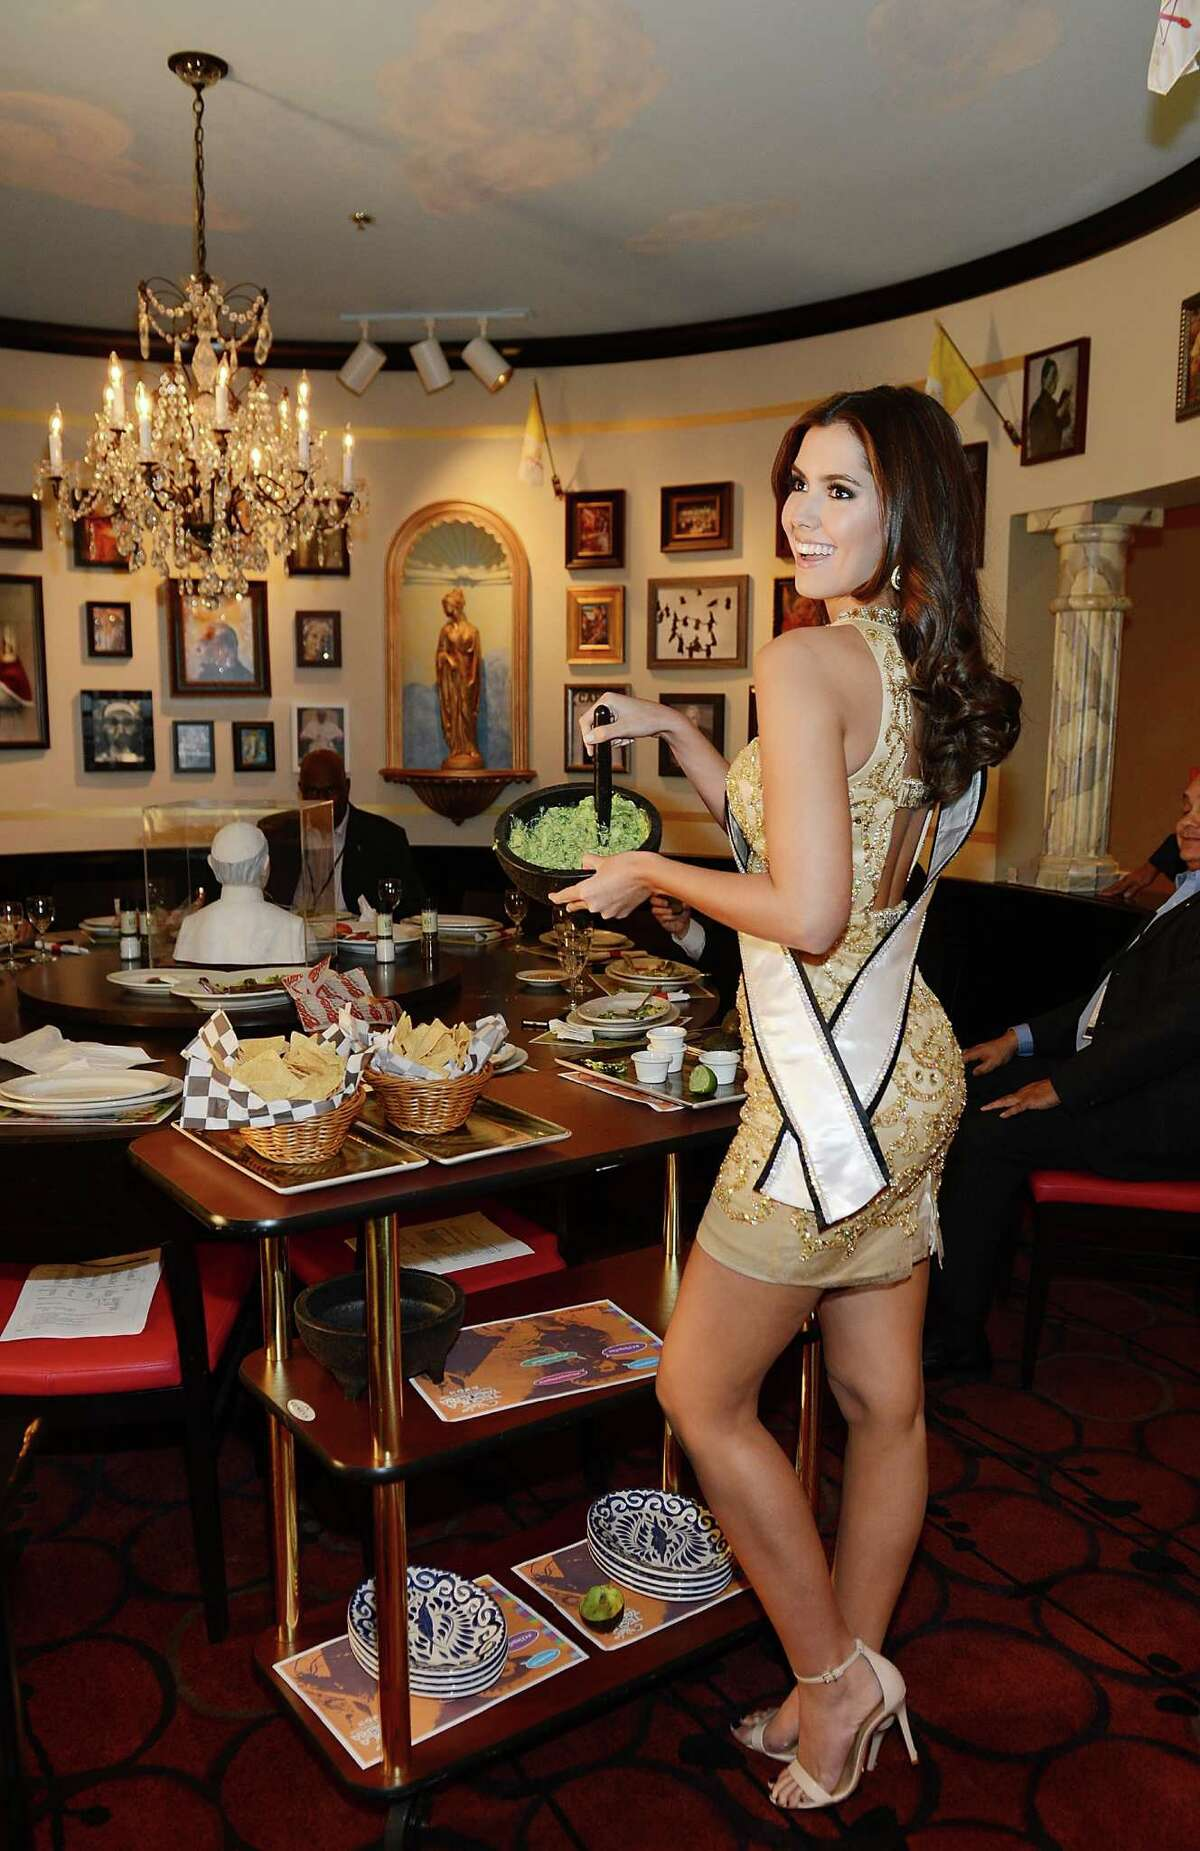 Miss Universe 2014 Paula Vega attends a welcome dinner at Buca Di Beppo Cafe Italiano at Ballys Hotel and Casino at Buca di Beppo on December 7, 2015 in Las Vegas, Nevada.